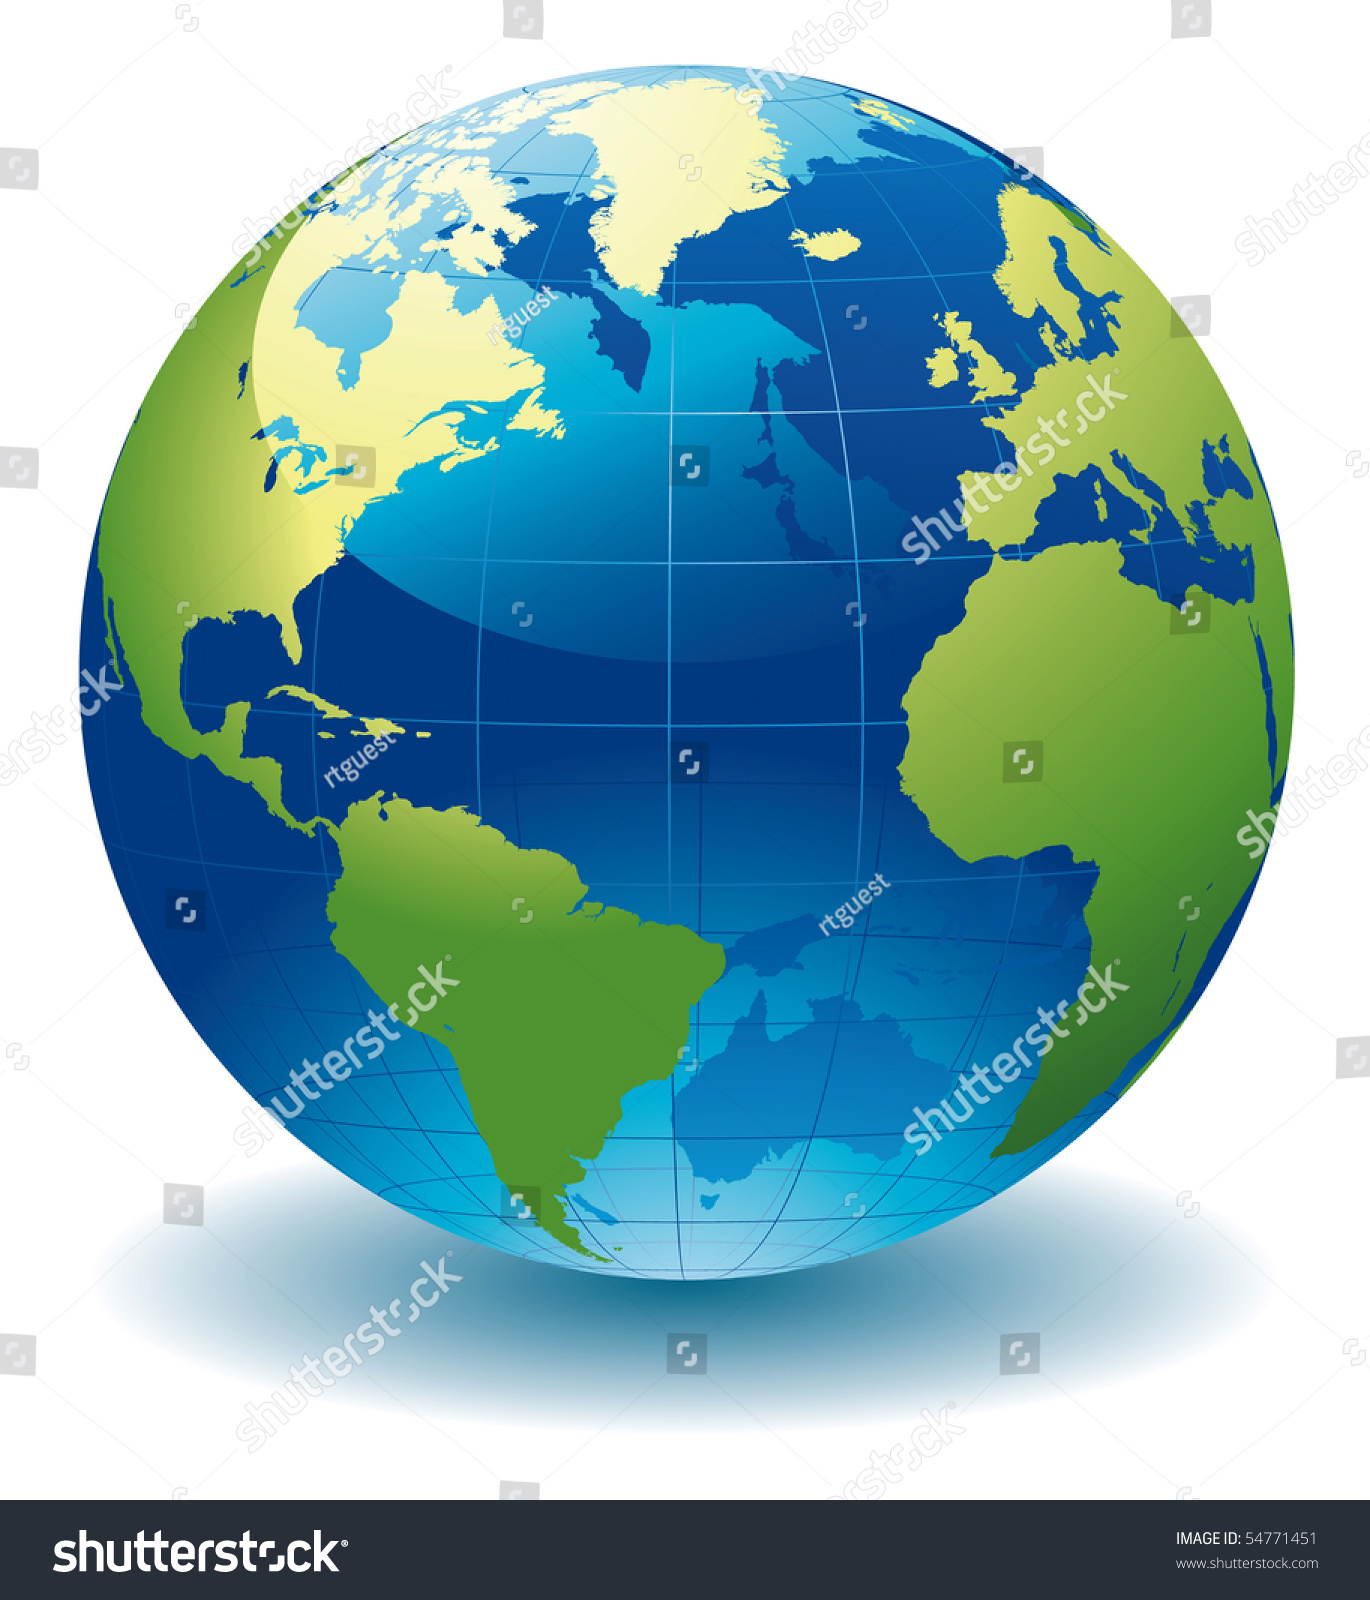 Http Www Shutterstock Com Pic 54771451 Stock Vector World Globe Editable Vector Illustration Html